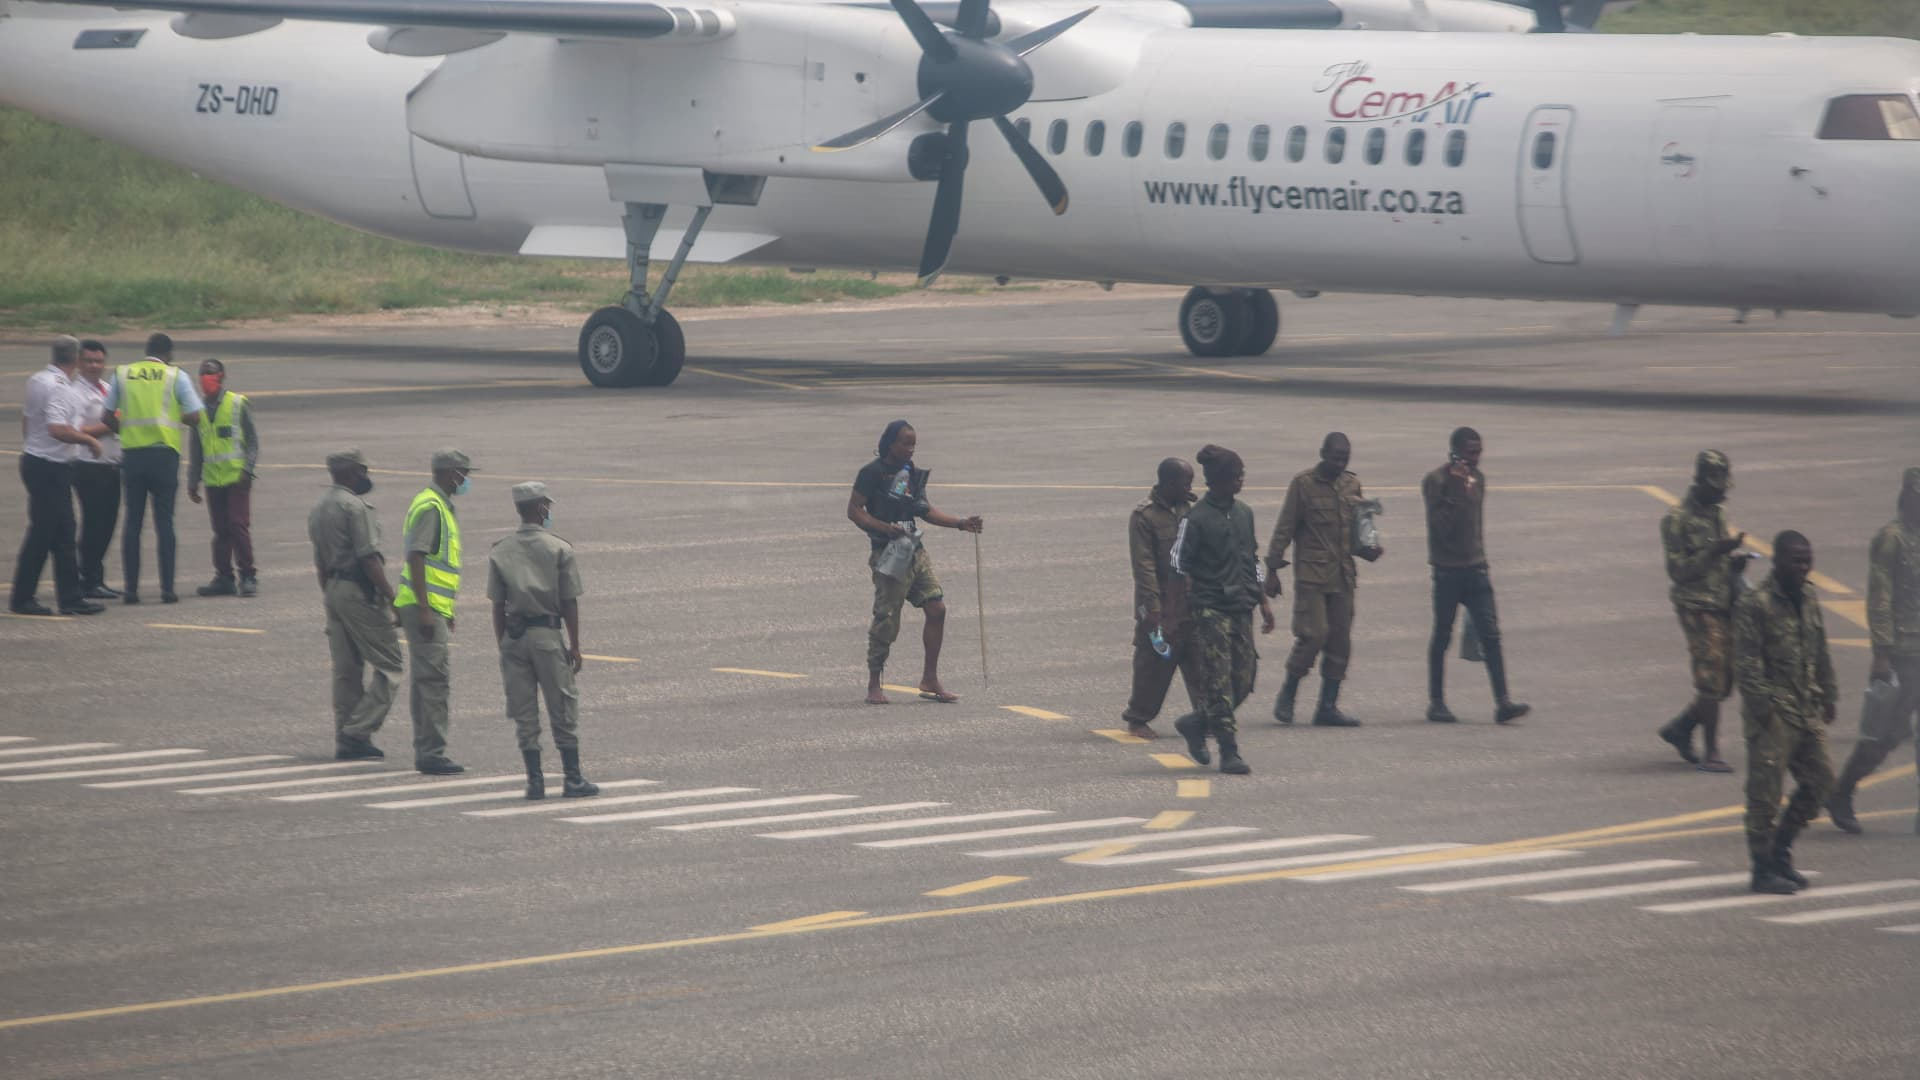 Mozambican soldiers are seen leaving the tarmac of the airport in Pemba on March 31, 2021. - Sporadic clashes broke out in Palma on Tuesday as thousands of residents hid around the besieged northern Mozambique town, scrambling to escape the area overrun by jihadist militants, aid agencies said.